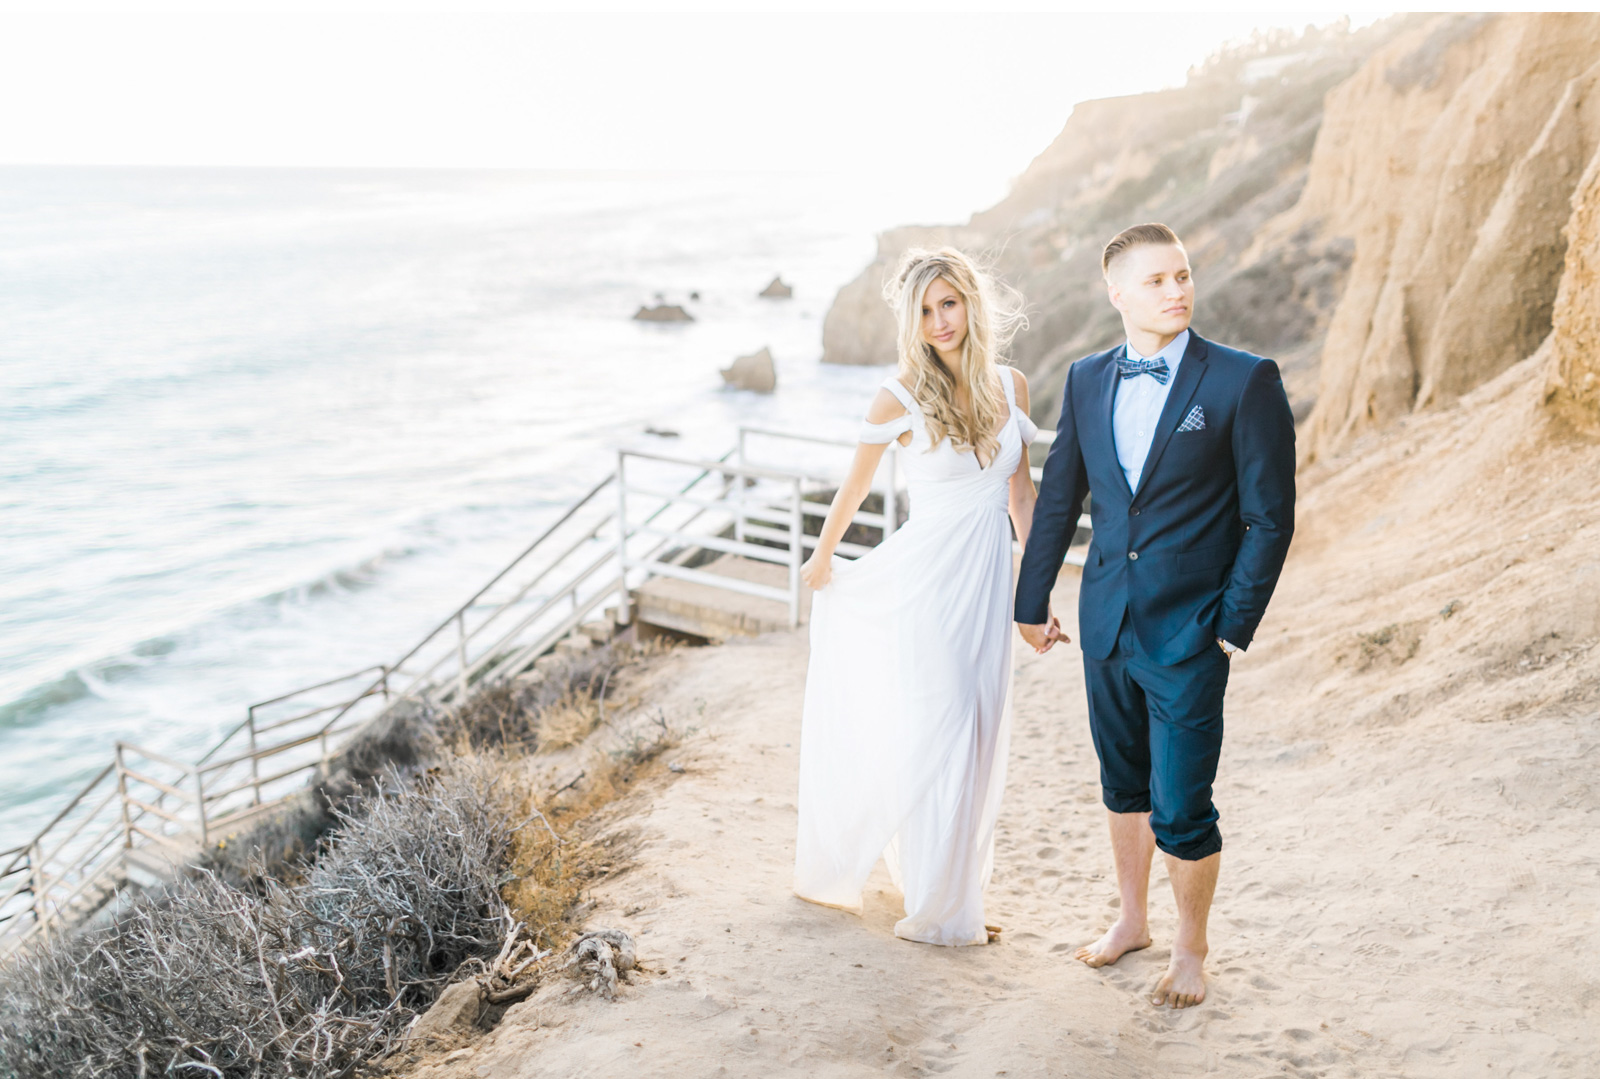 Big-Sur-Wedding-Photographer-Natalie-Schutt-Photography_09.jpg